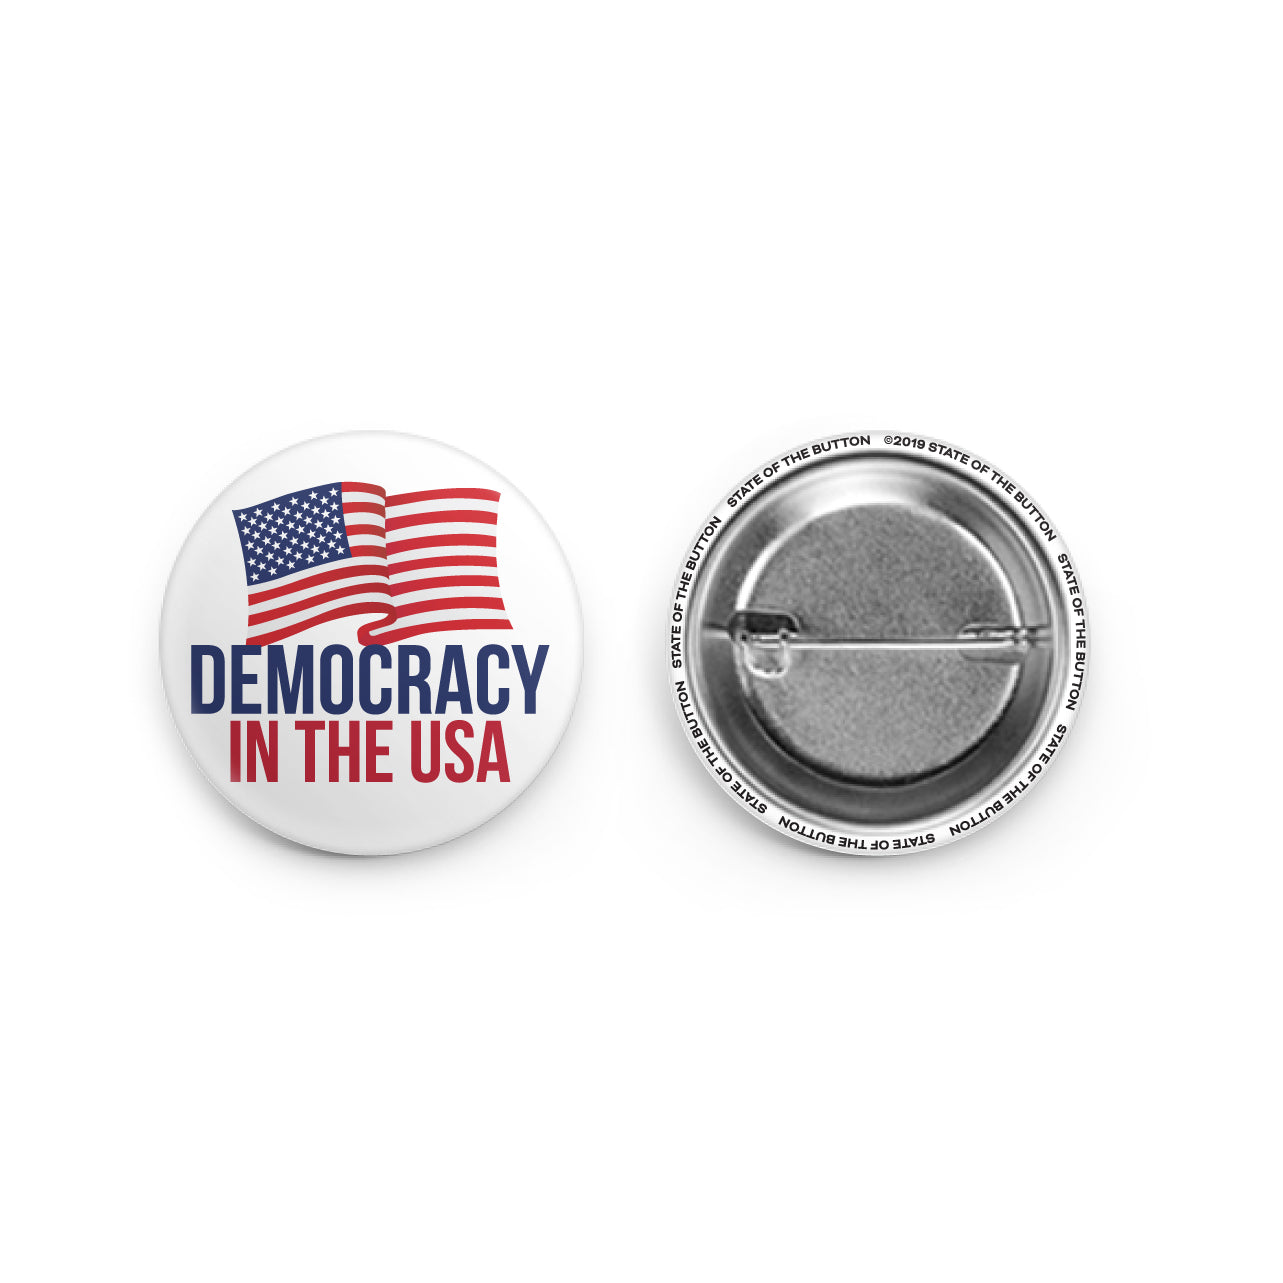 democracy in the usa pinback button